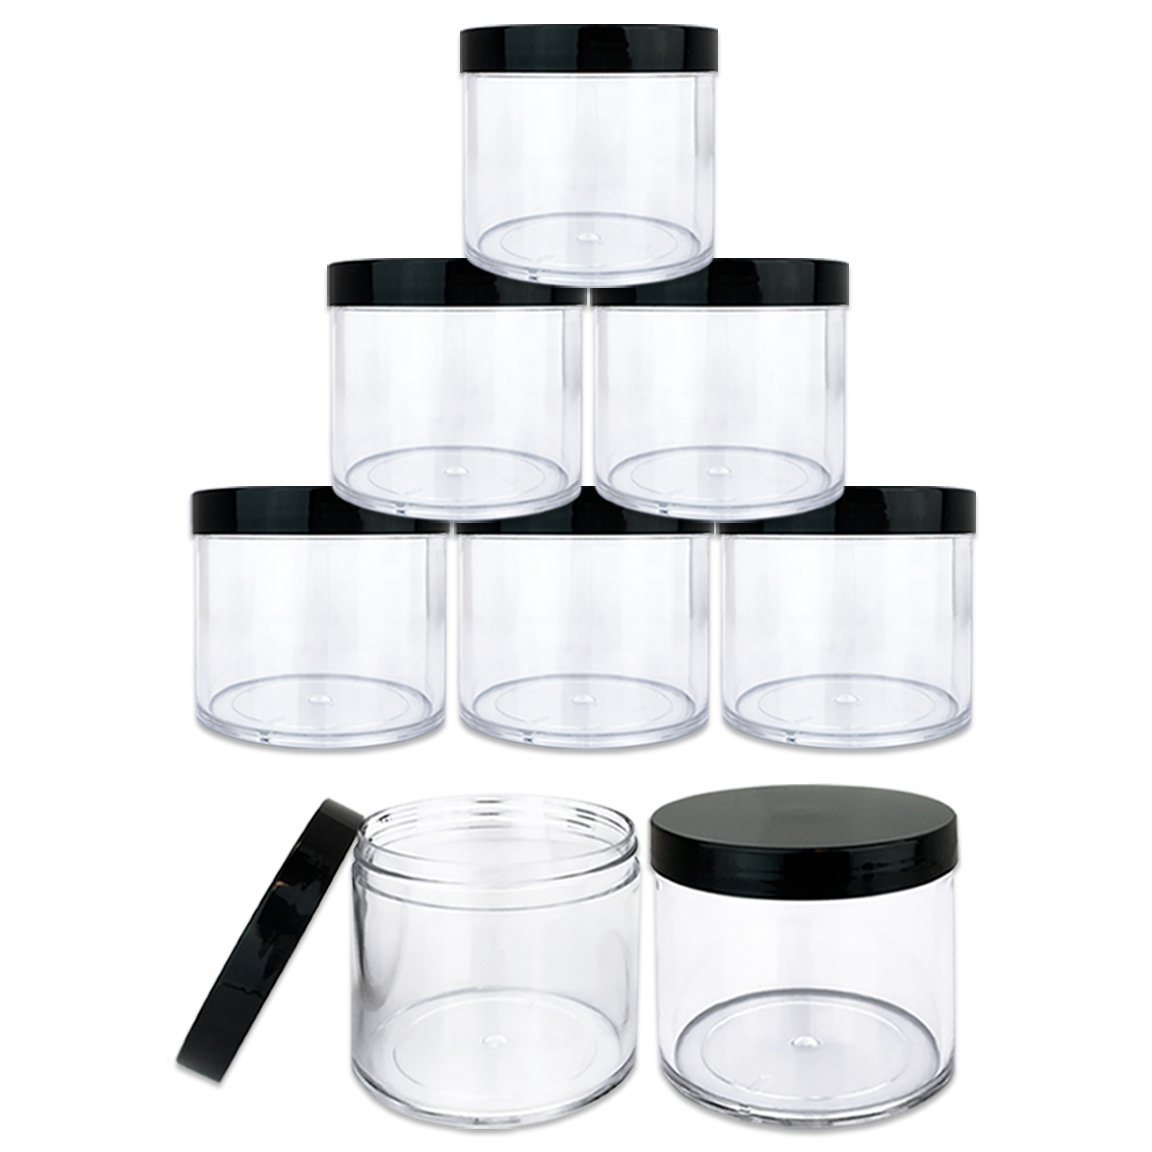 Beauticom 10 oz. (300g /300ML) (Quantity: 6 Packs) Thick Wall Round Leak Proof Clear Acrylic Jars with Black Lids for Beauty, Cream, Cosmetics, Salves, Scrubs